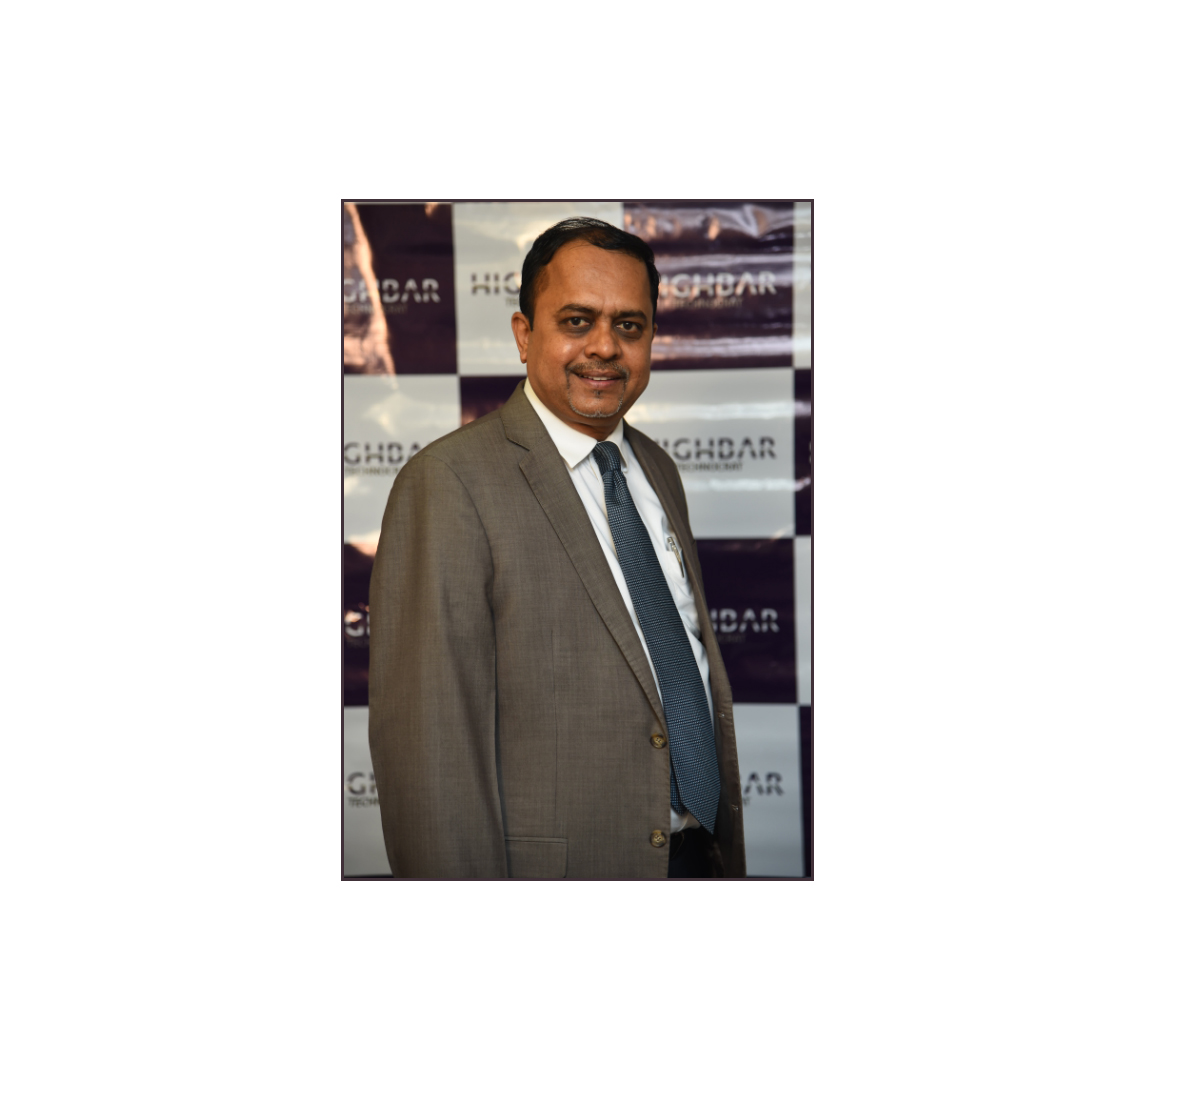 Highbar Technocrat Limited gets recognised as an 'SAP Outsourcing Operations Partner'.